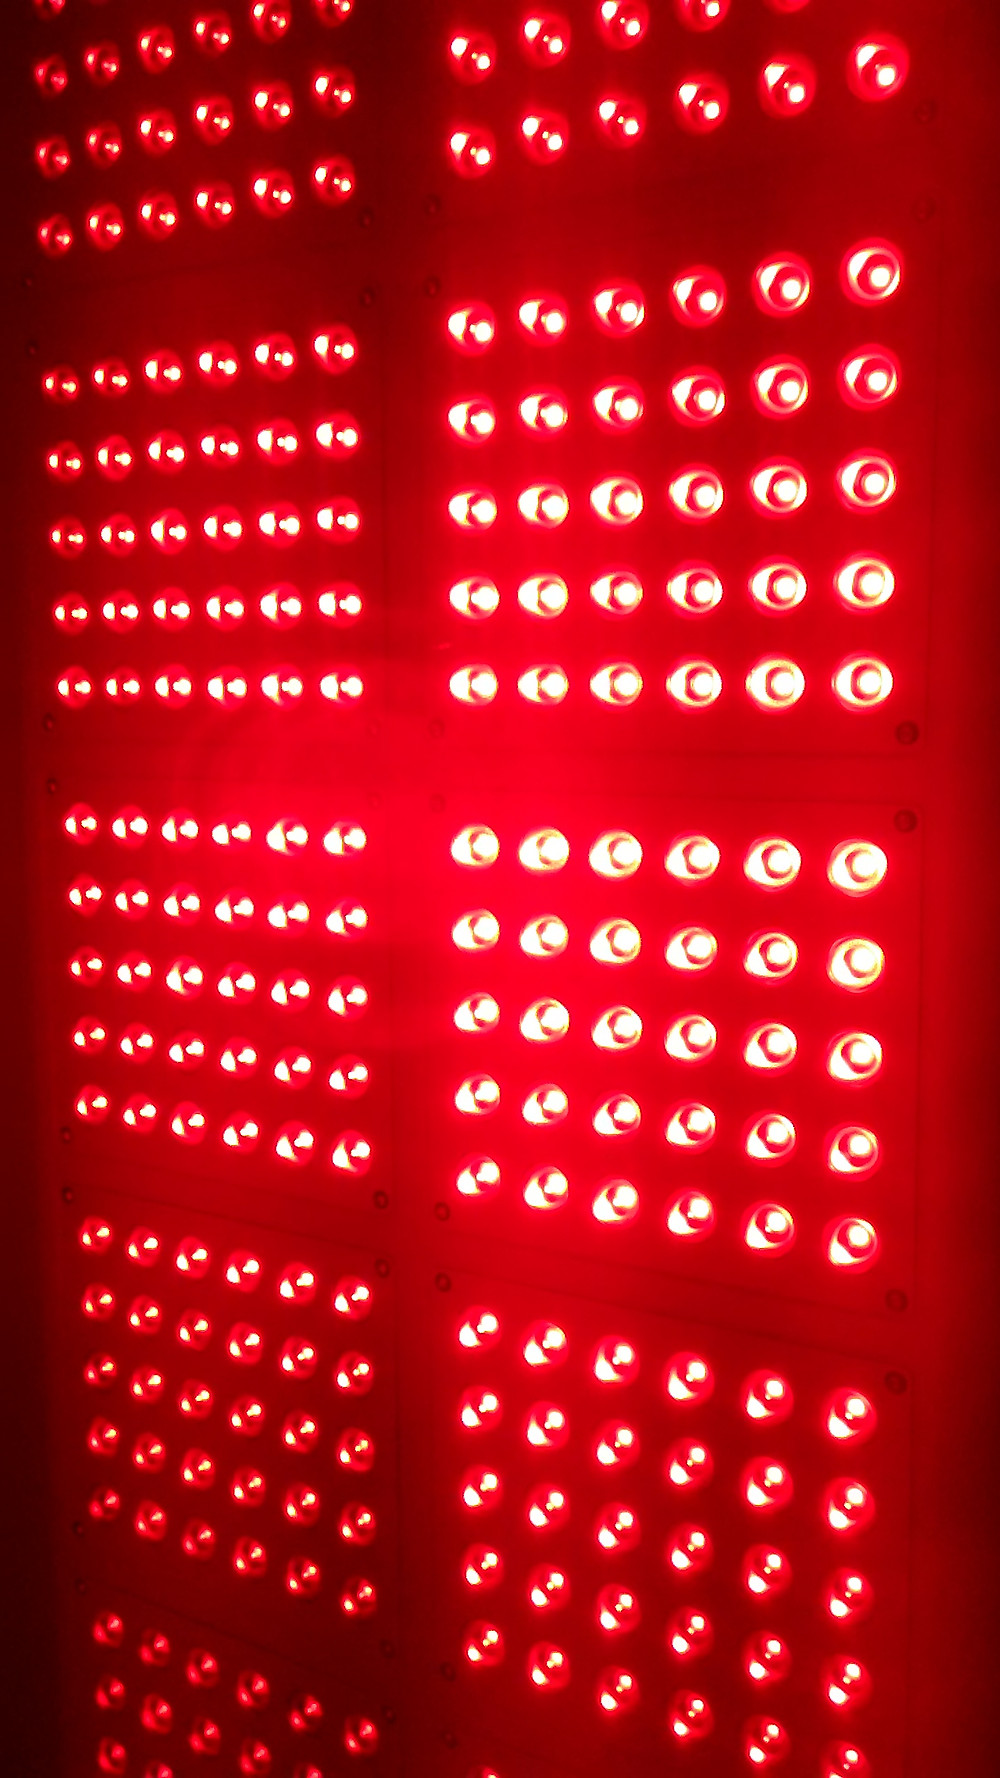 Full body light therapy charlottereflexology.com/redlighttherapy